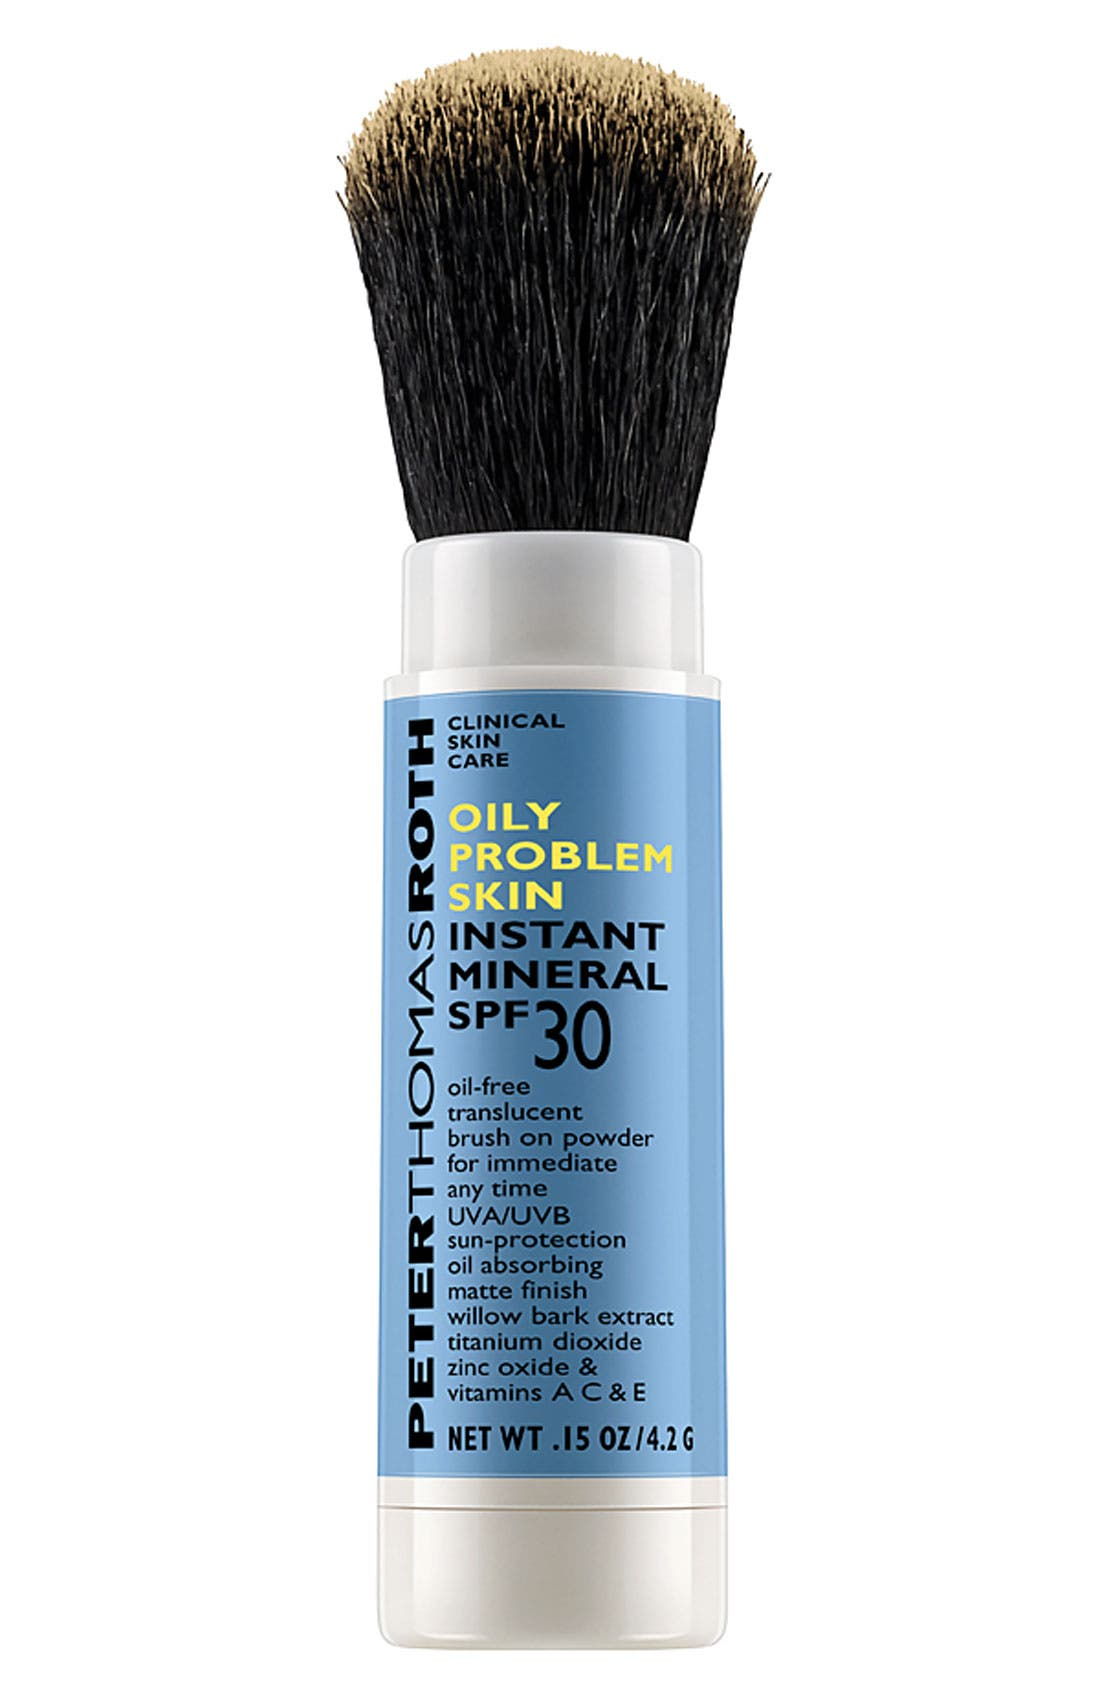 PETER THOMAS ROTH Instant Mineral Oily Problem Skin Translucent Brush-On Powder SPF 30, Main, color, 000